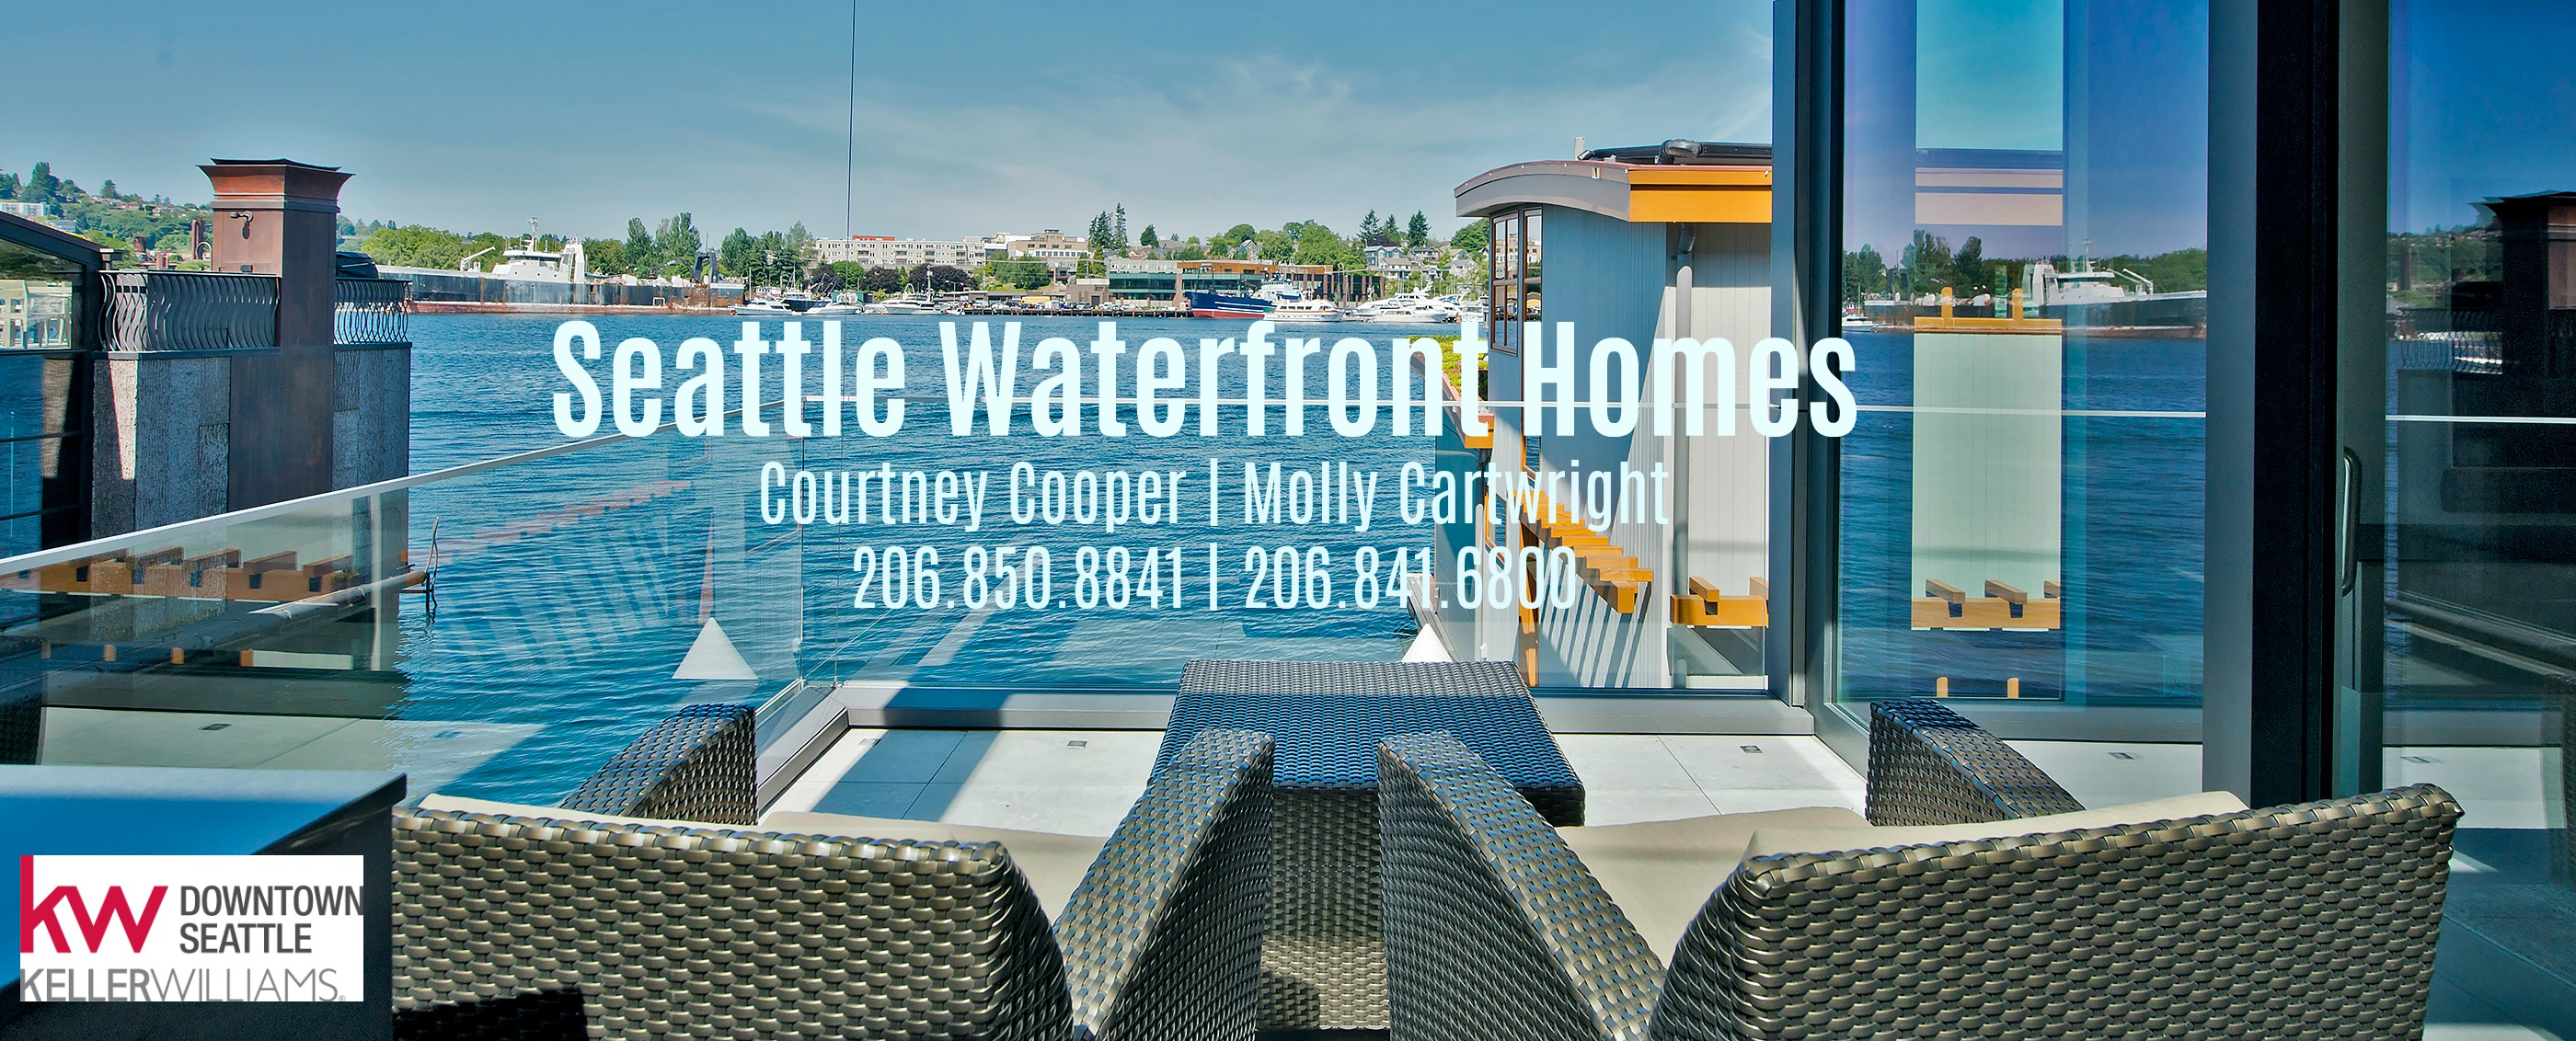 Seattle Waterfront Homes-Banner